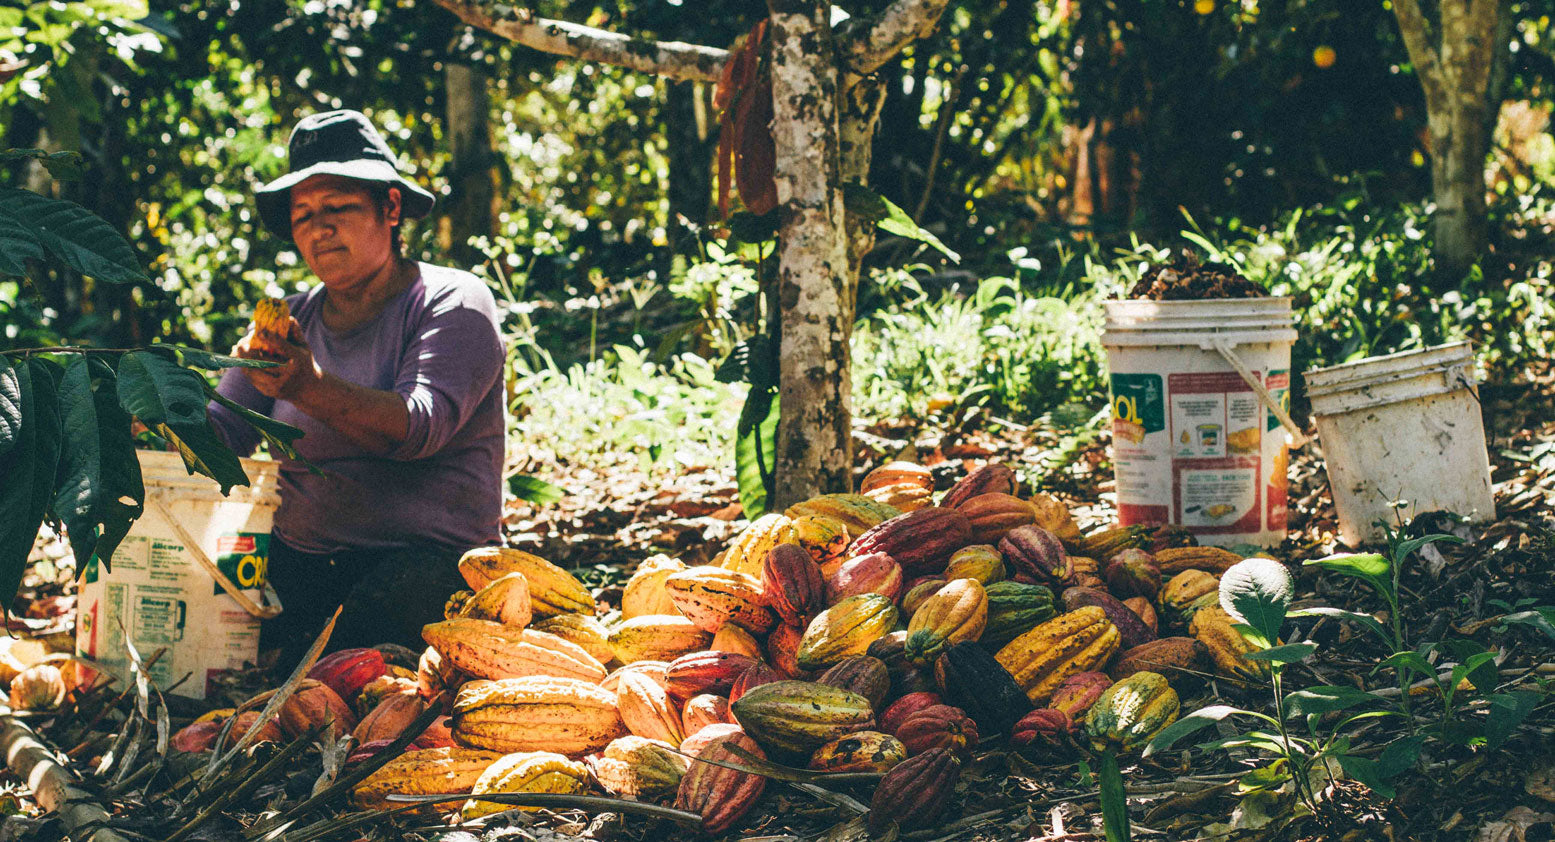 Marella Muñoz Maria harvests fresh cacao pods, taking the cacao beans out and placing them into a bucket.